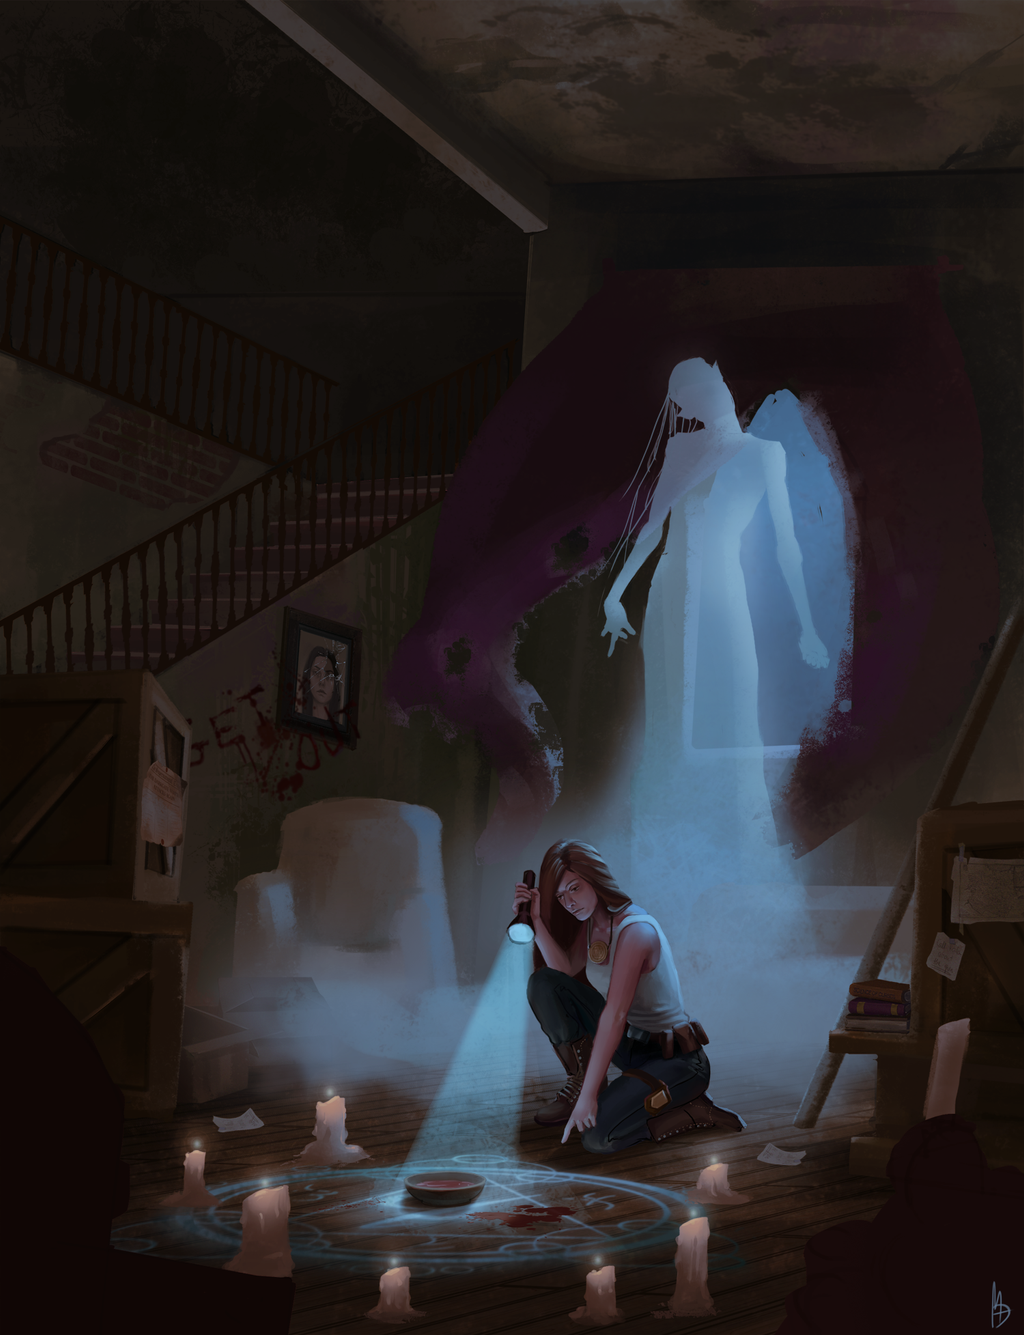 haunted_house_by_m_whistler-d9uplrb.png